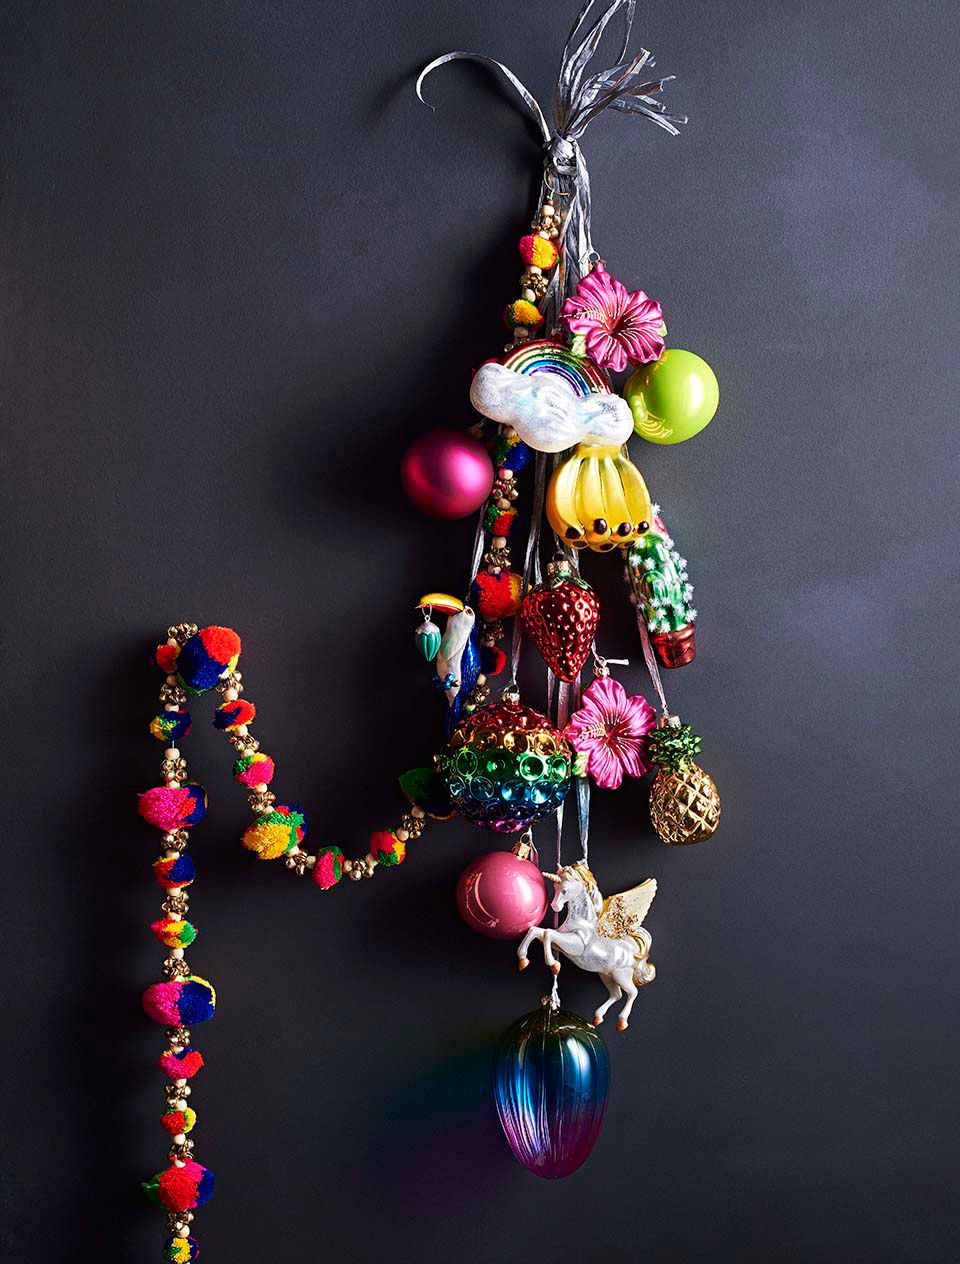 Baubles hanging from ribbon on the wall